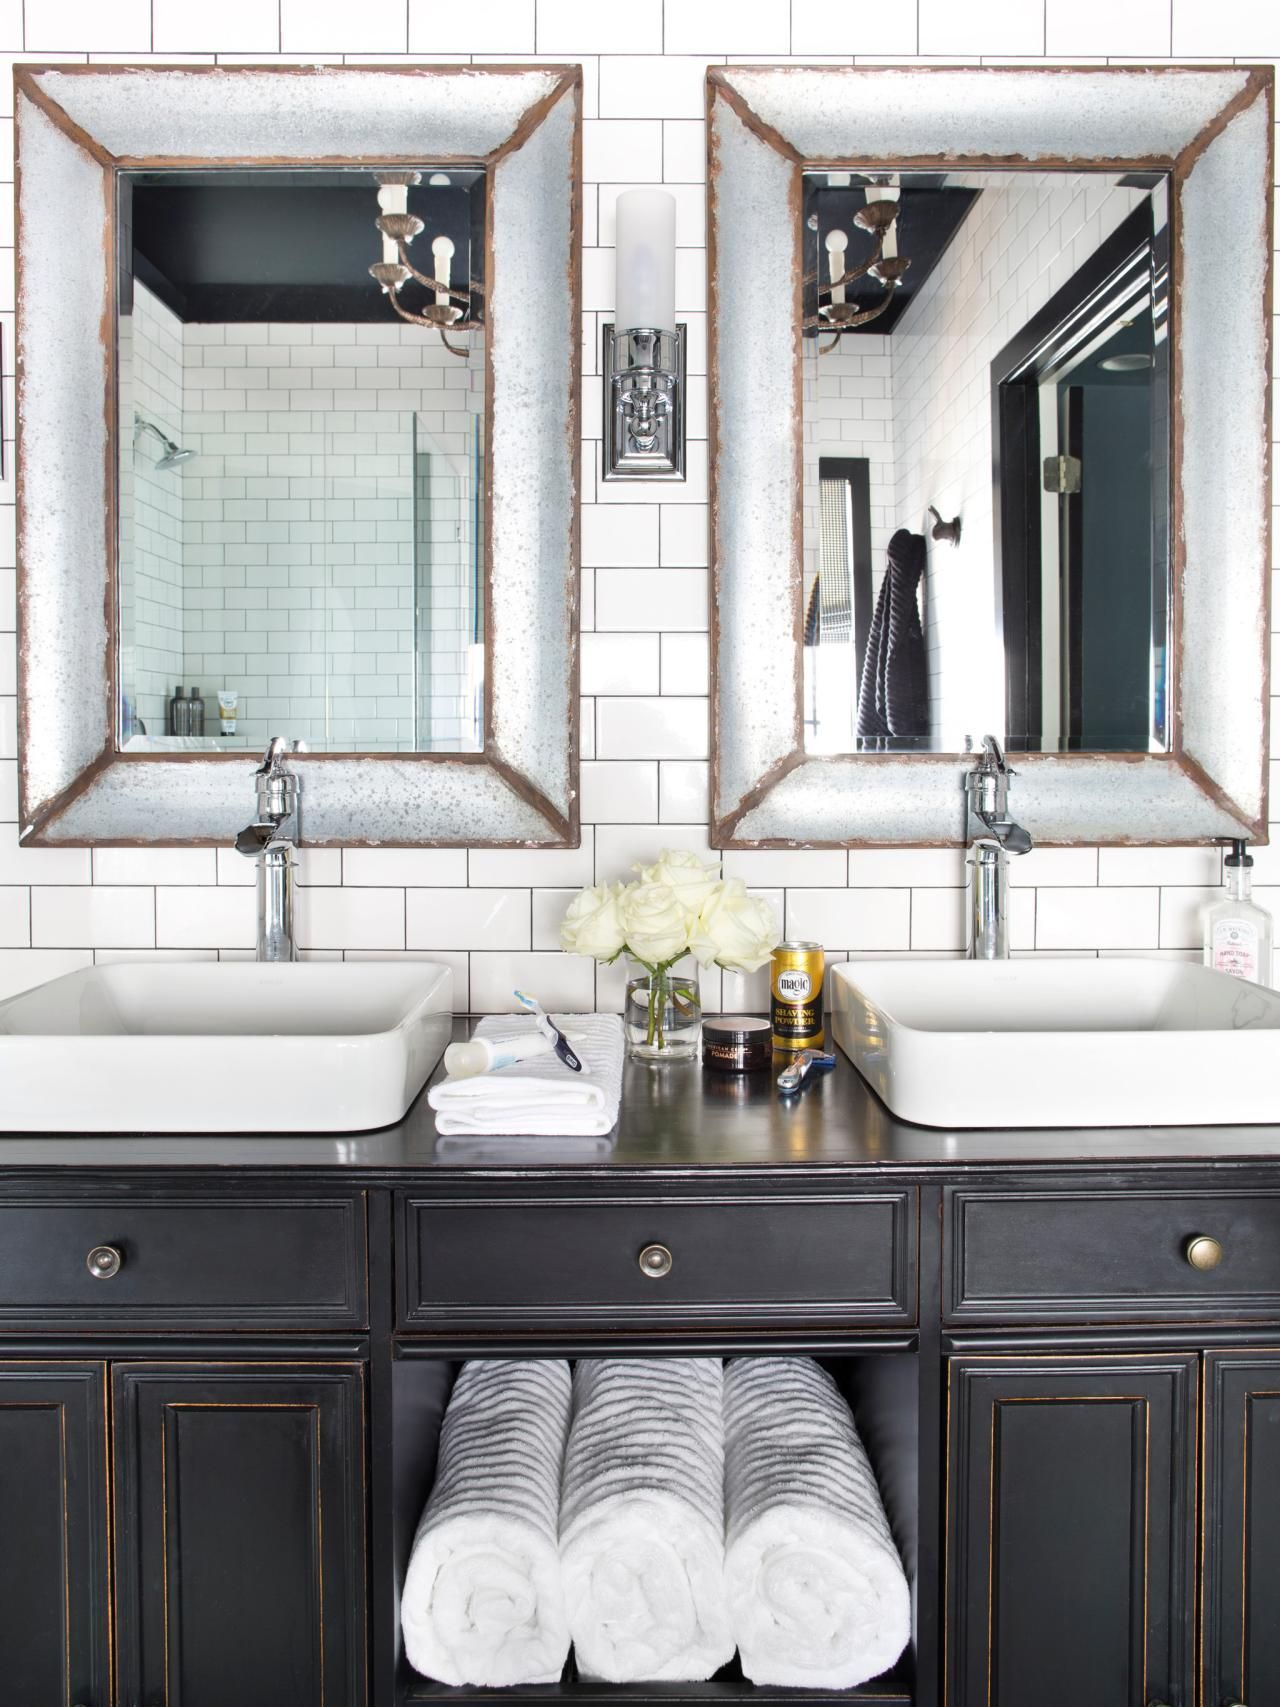 bold black paint can turn even the most basic builder grade closet doors into - Bathroom Cabinets Black